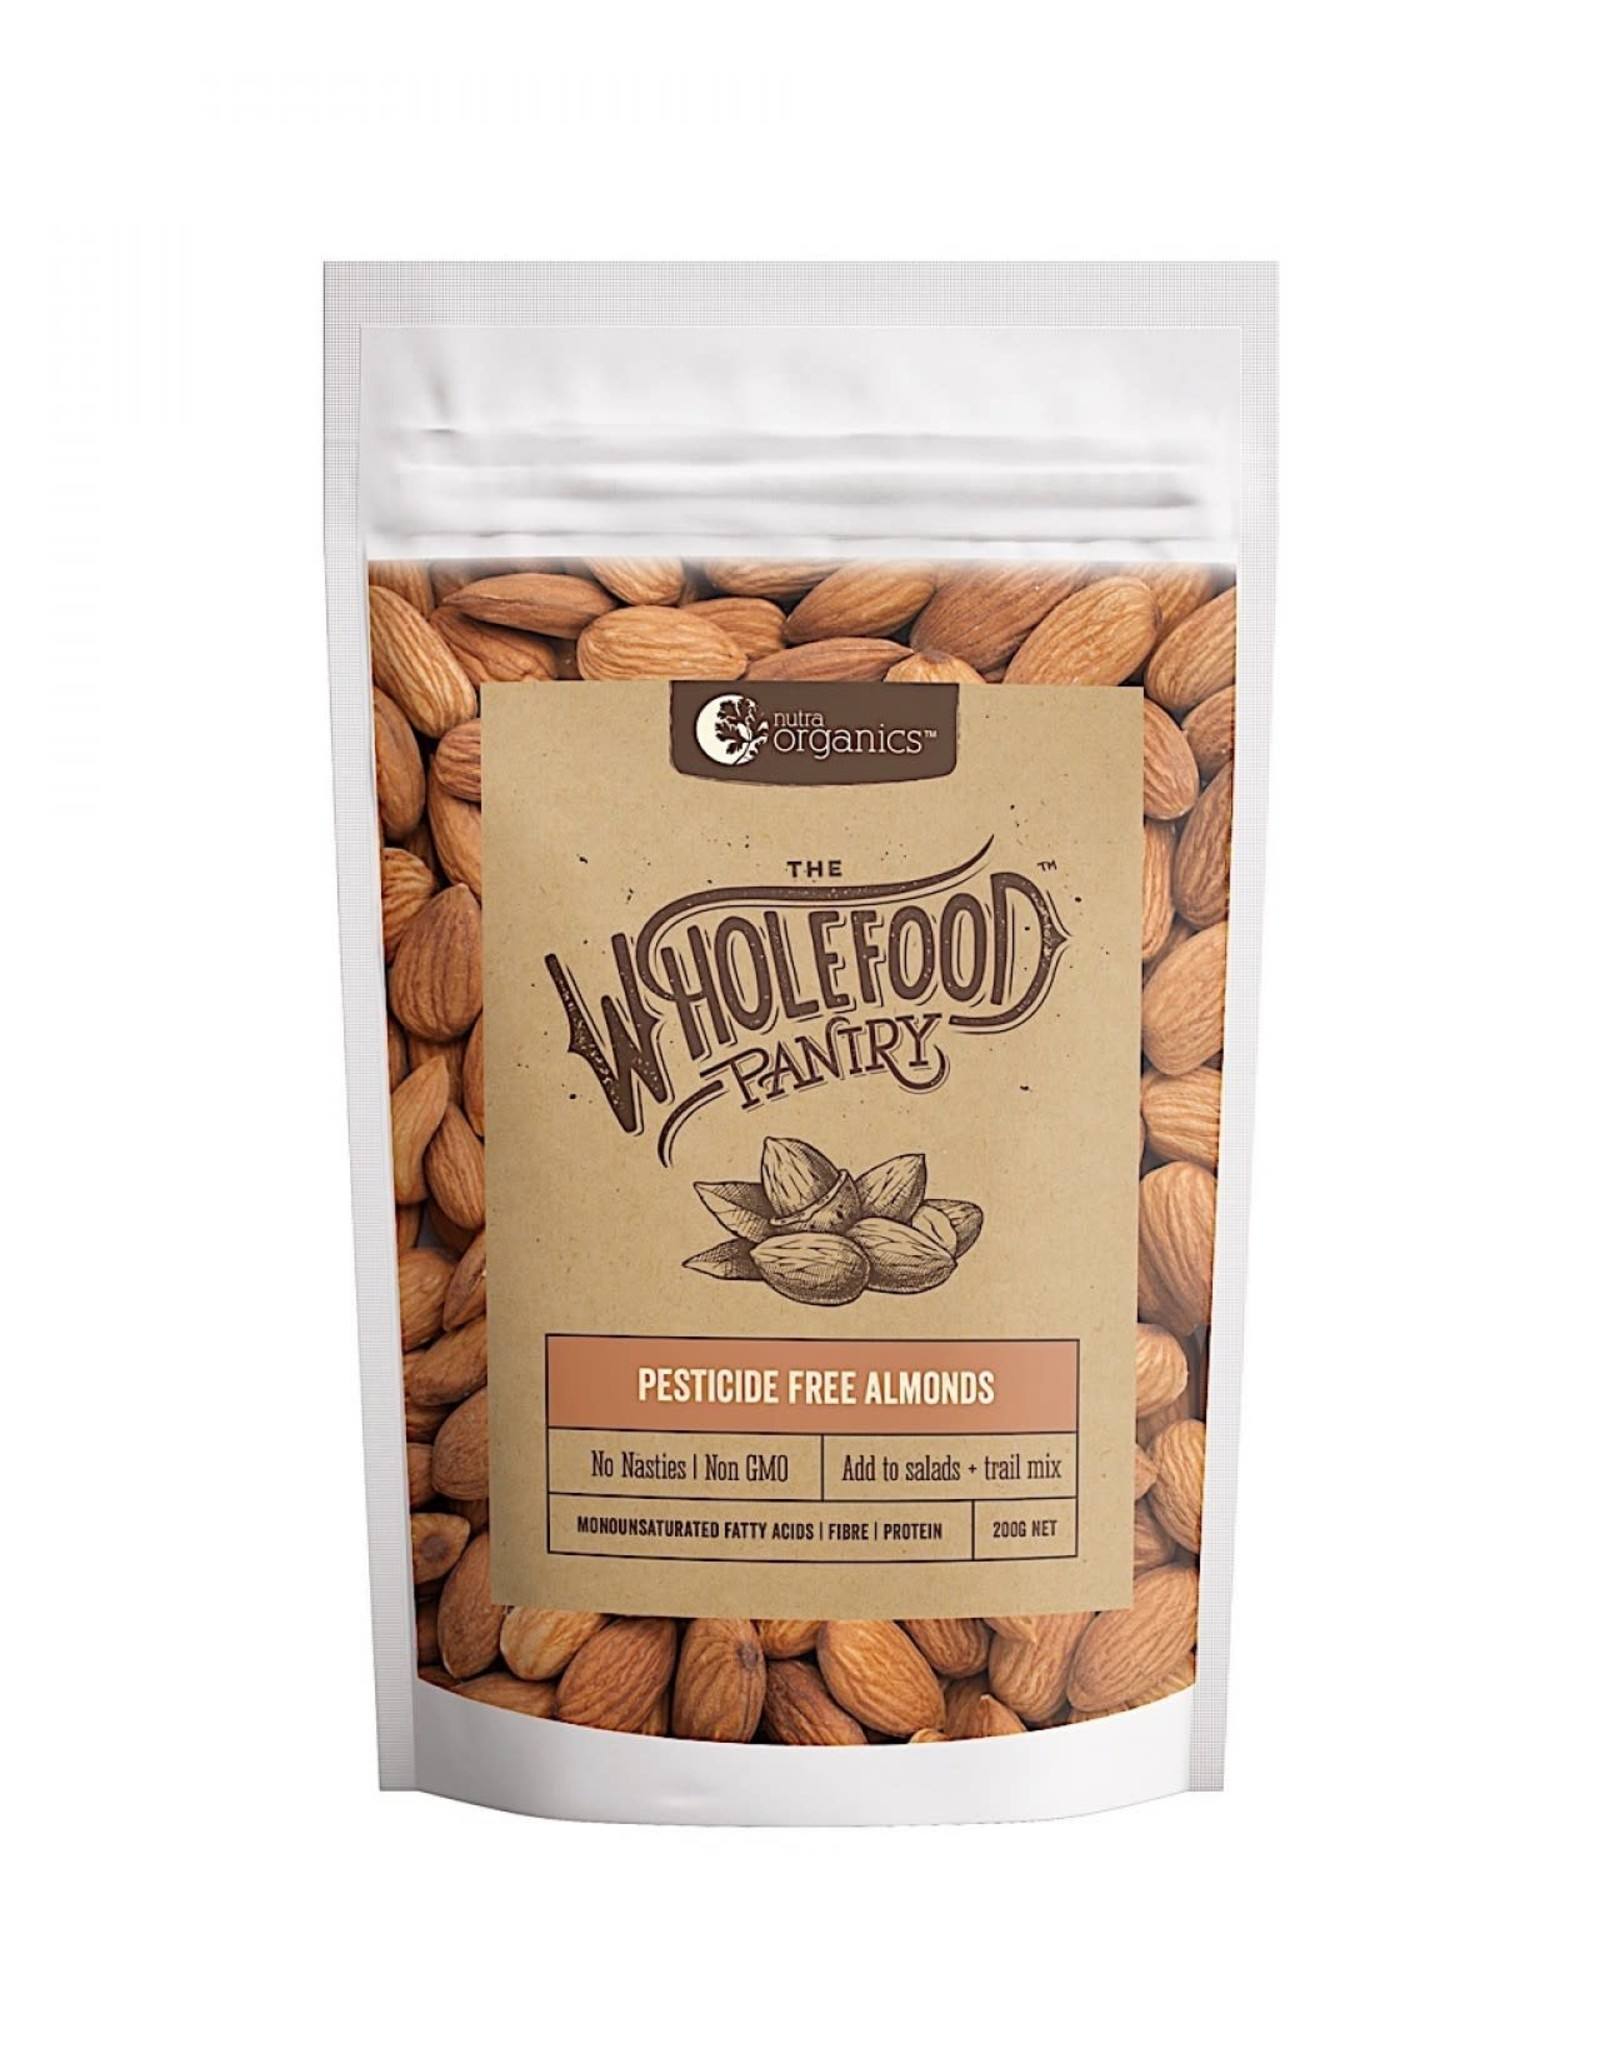 The Whole Food Pantry Pesticide Free Almonds - 200g